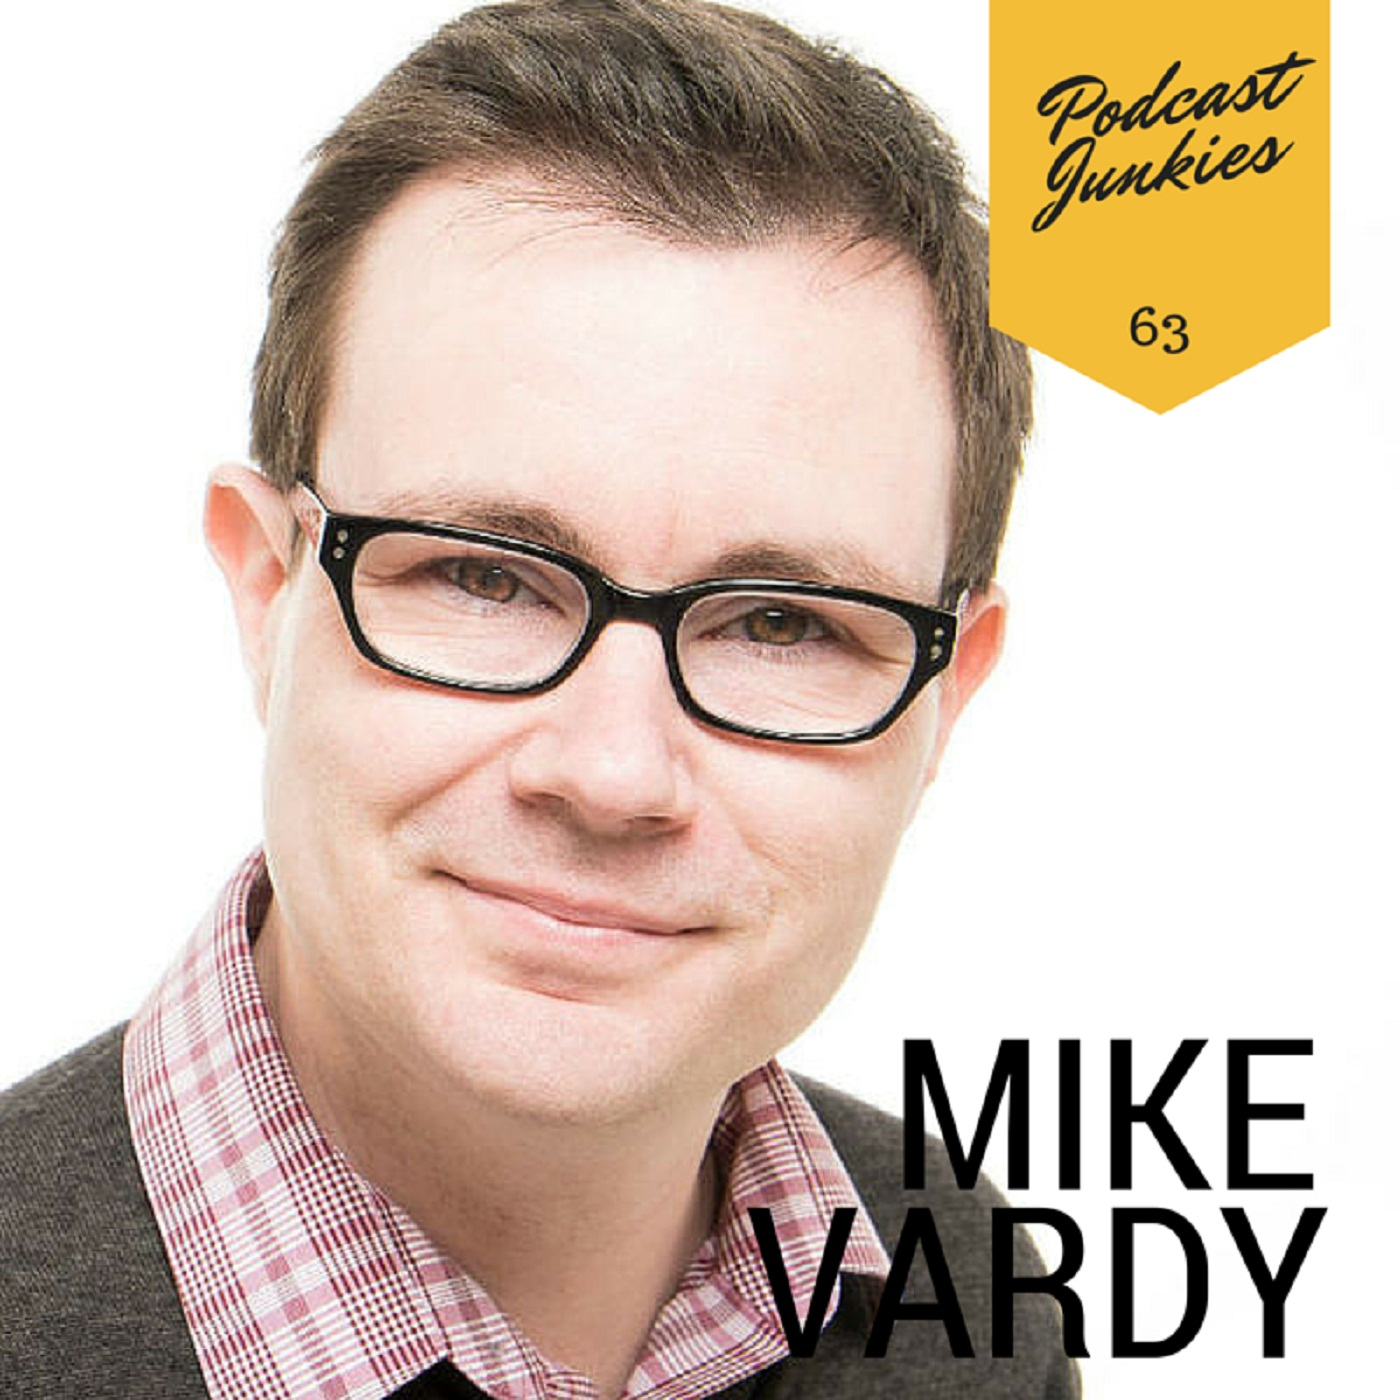 063 Mike Vardy  | A Life Lived Productively Pays Off